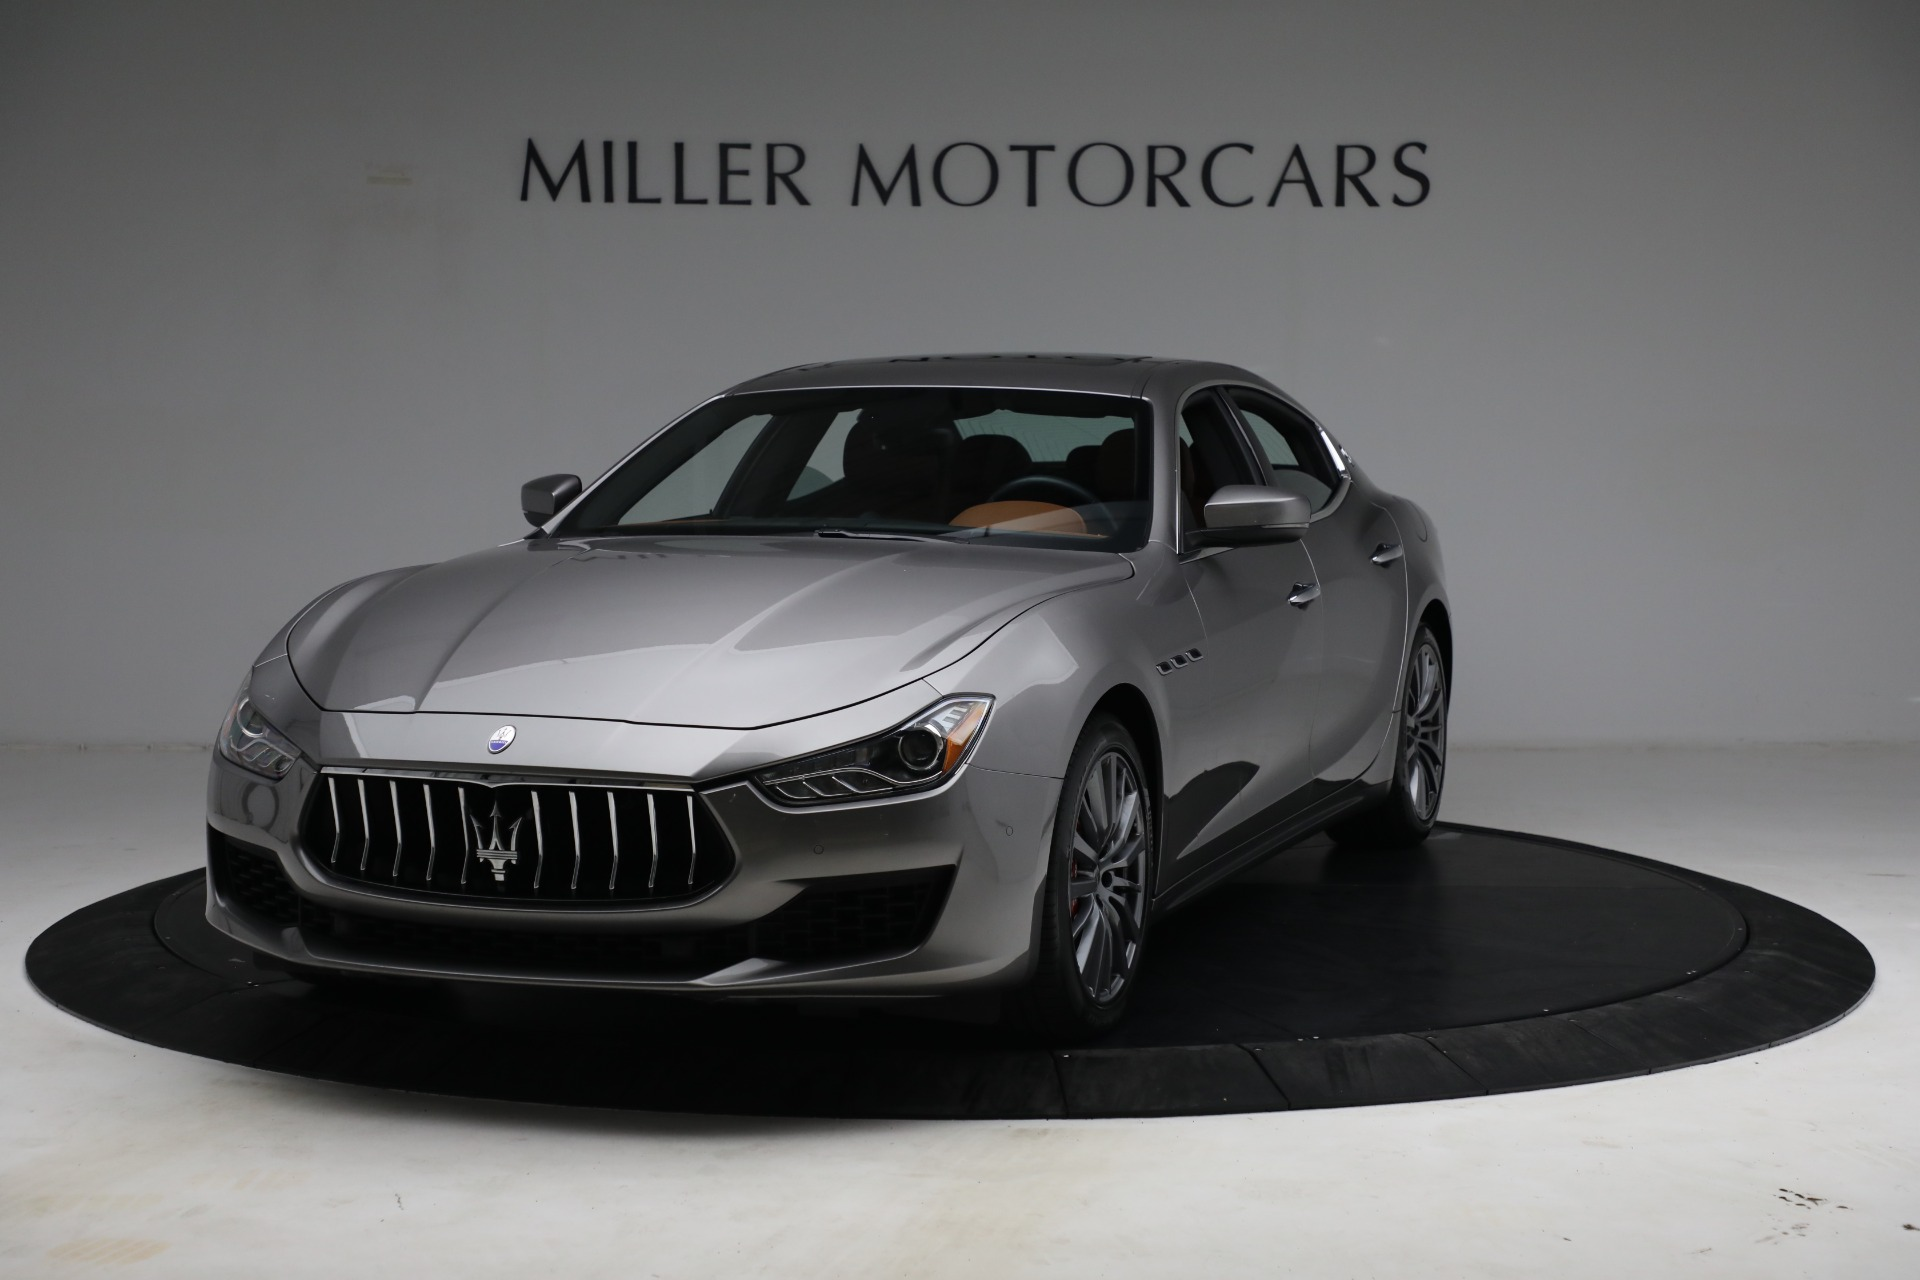 Used 2018 Maserati Ghibli S Q4 for sale $54,900 at Rolls-Royce Motor Cars Greenwich in Greenwich CT 06830 1